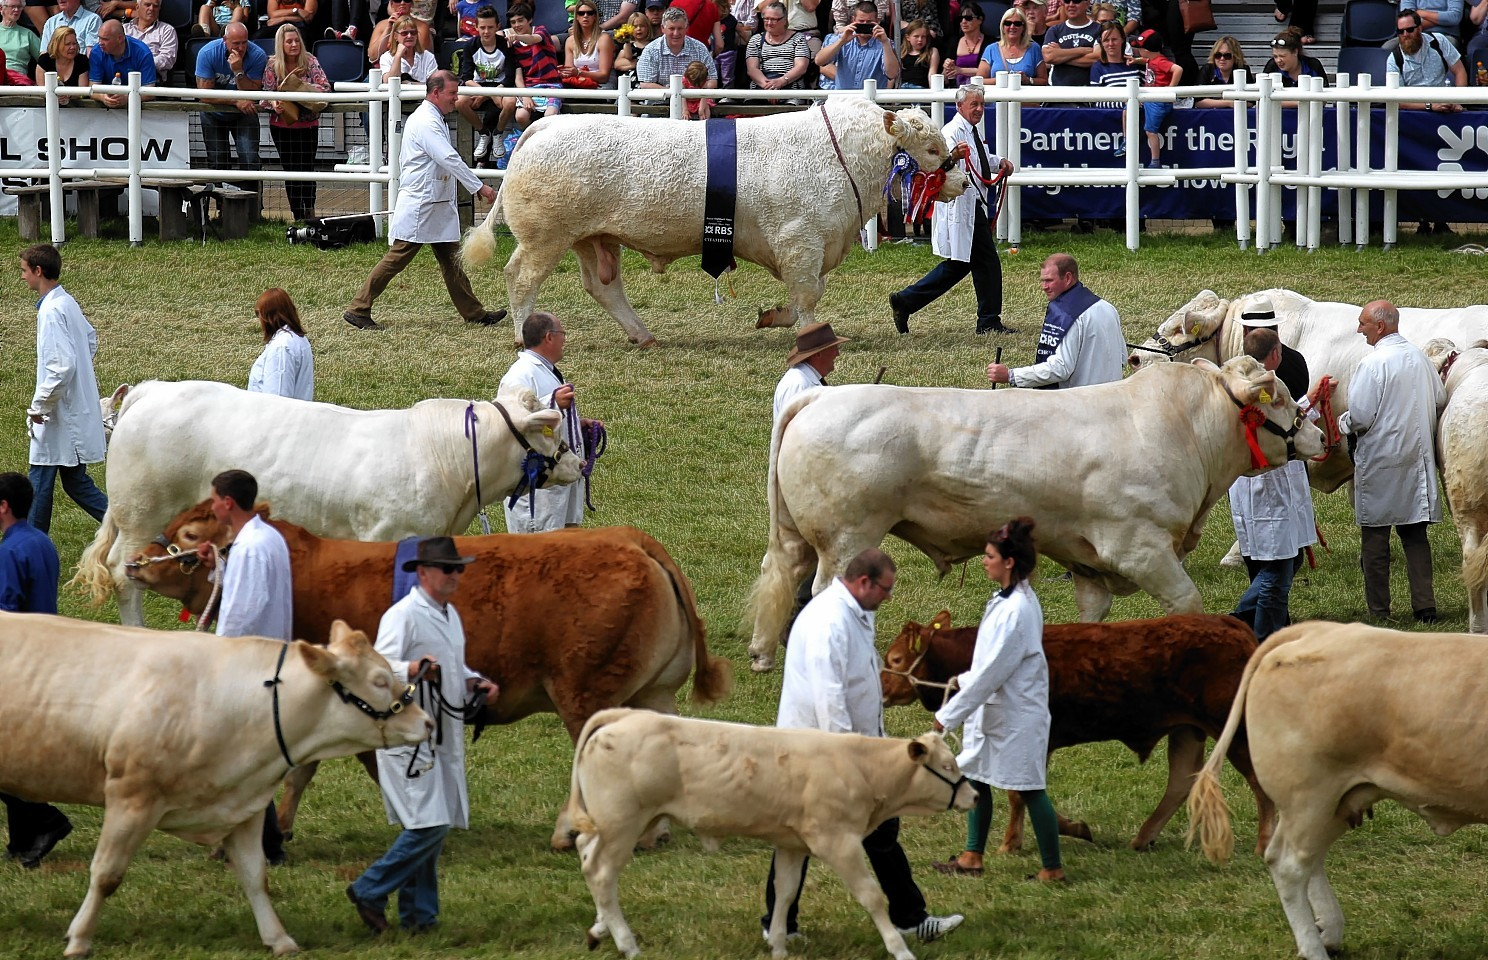 Prize-winning cattle are paraded through the main ring at the Royal Highland Show in Edinburgh.